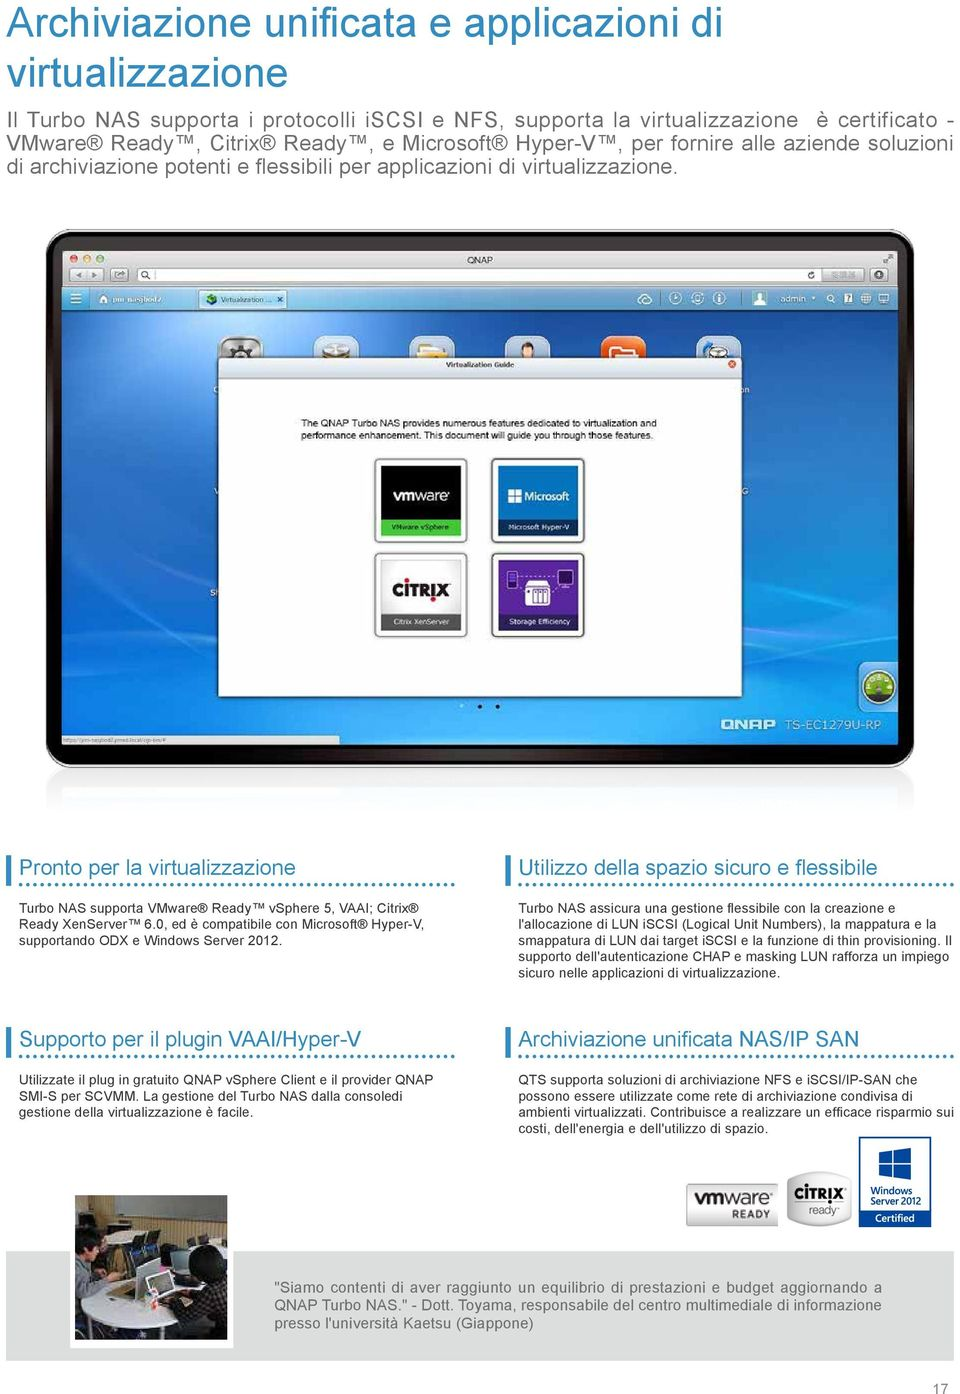 Pronto per la virtualizzazione Turbo NAS supporta VMware Ready vsphere 5, VAAI; Citrix Ready XenServer 6.0, ed è compatibile con Microsoft Hyper-V, supportando ODX e Windows Server 2012.